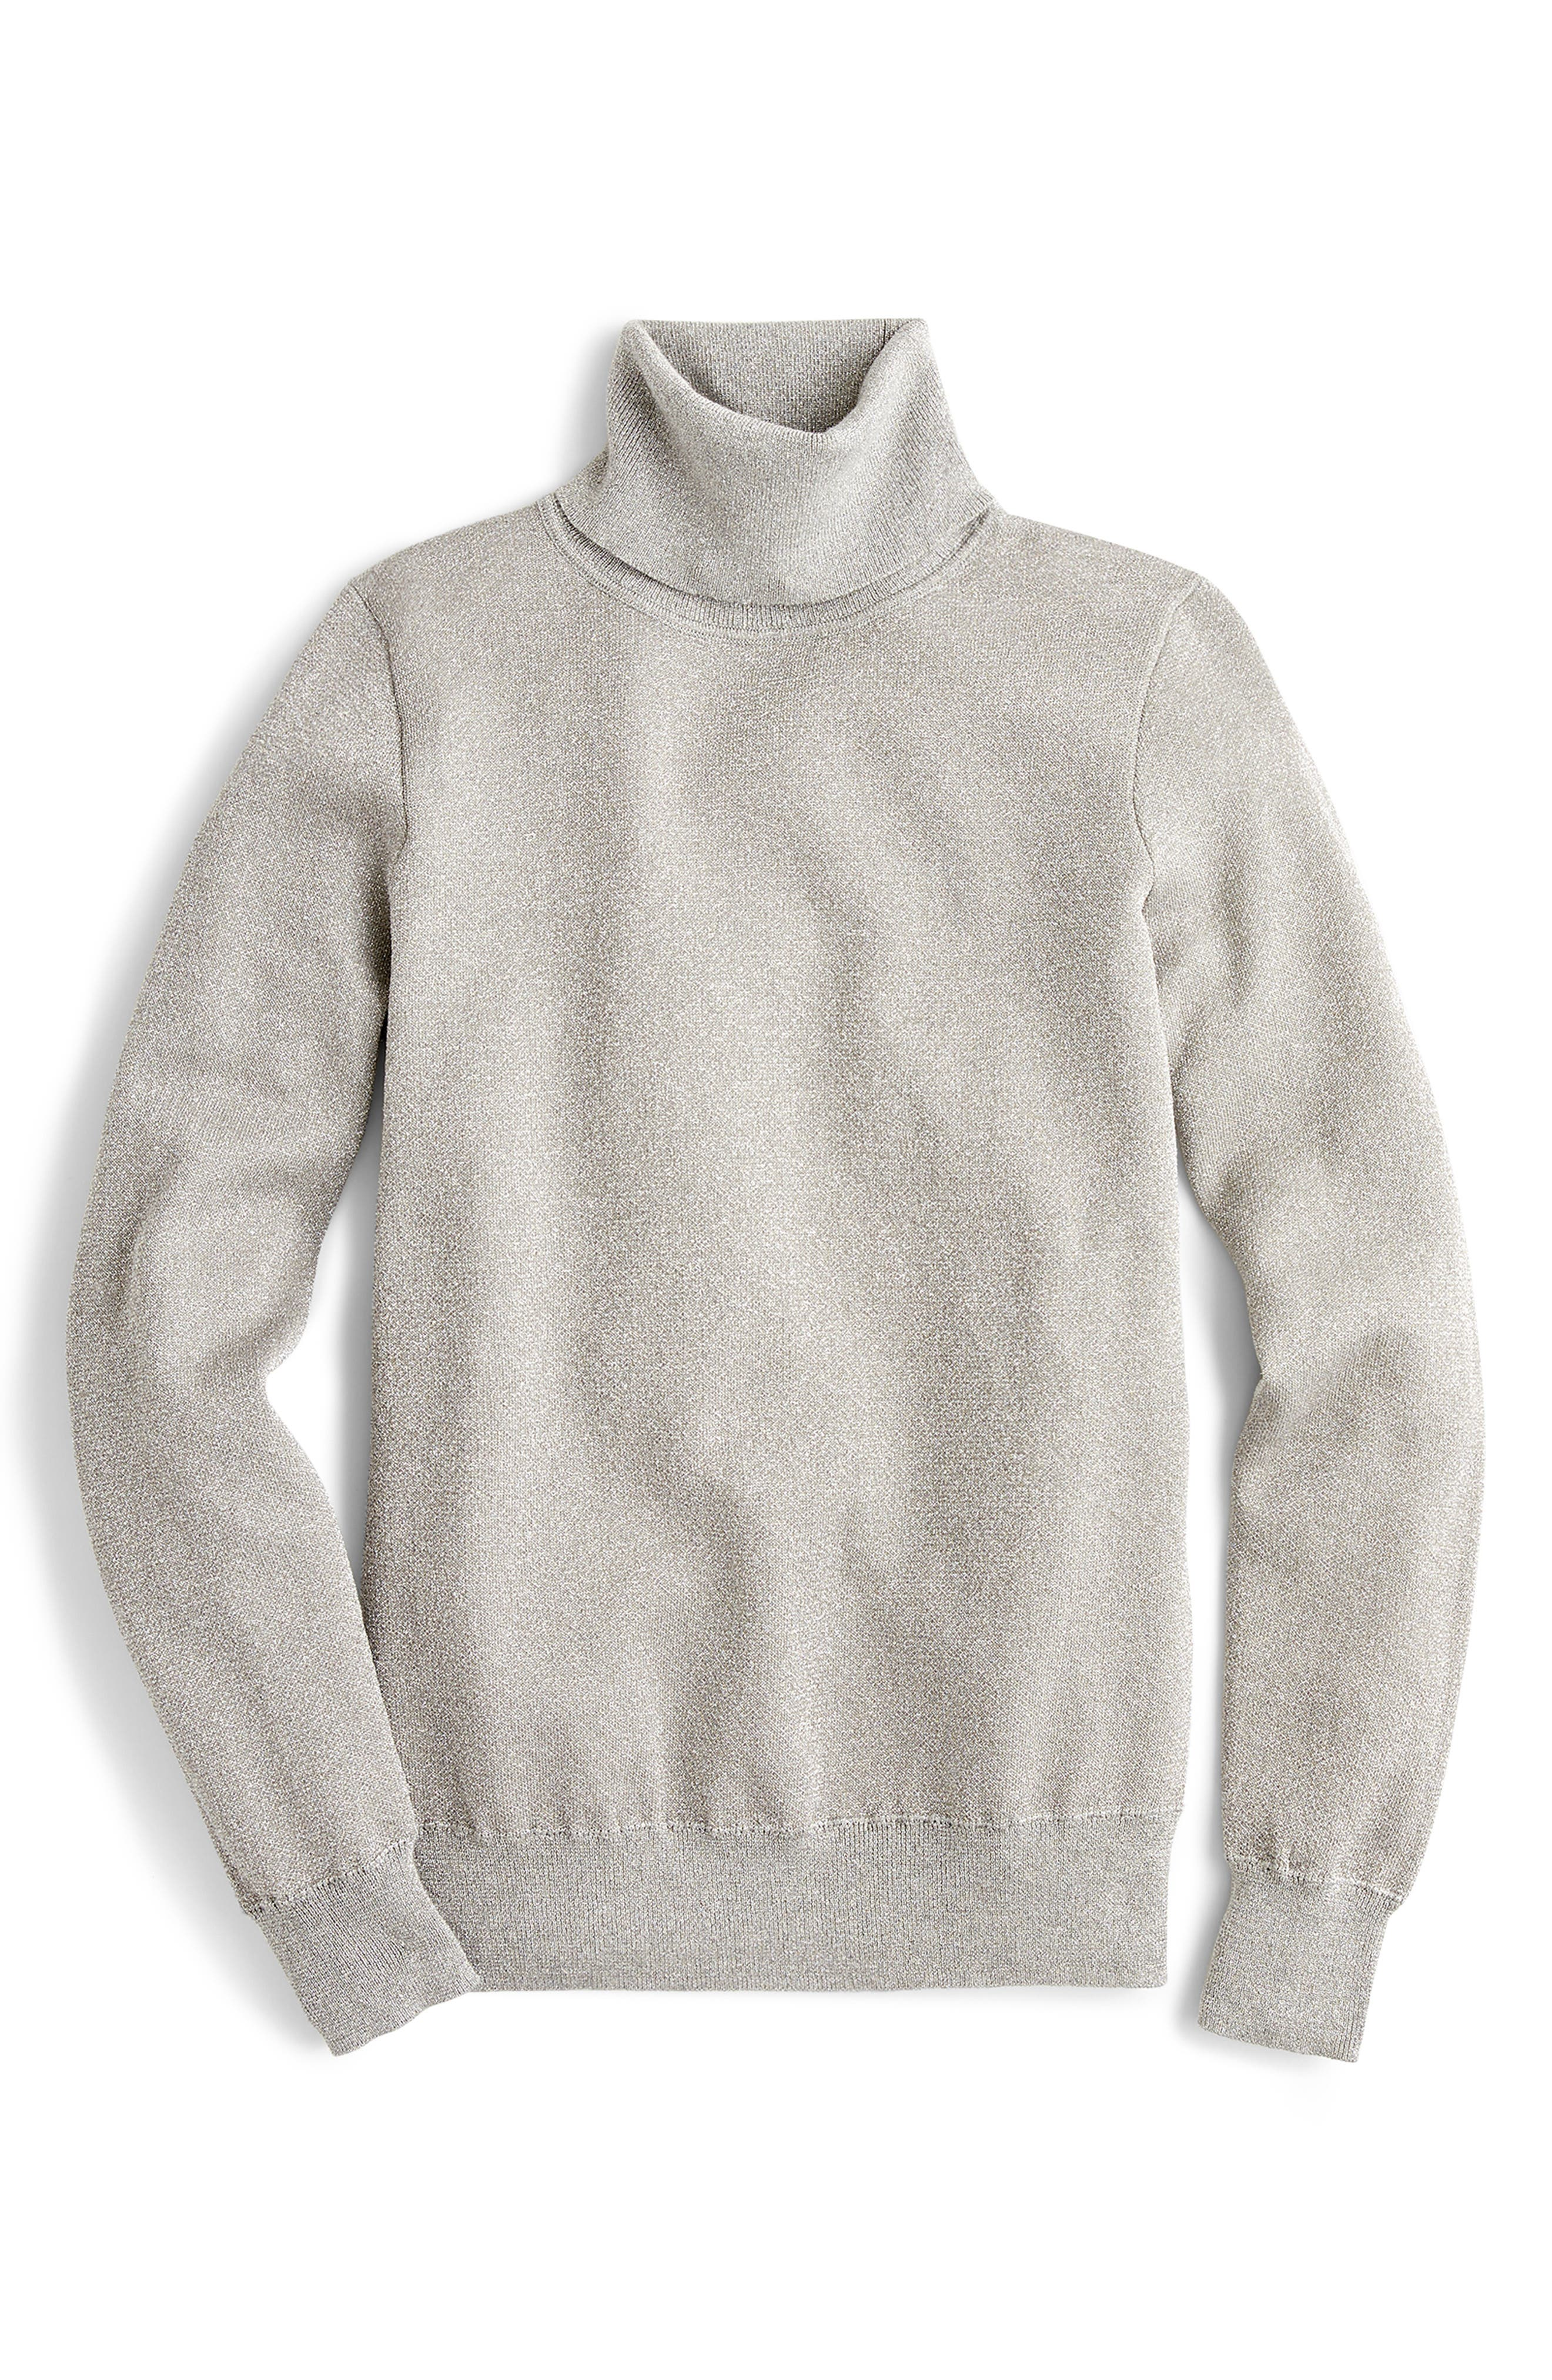 Tippi Lurex<sup>®</sup> Turtleneck Sweater,                             Main thumbnail 1, color,                             040